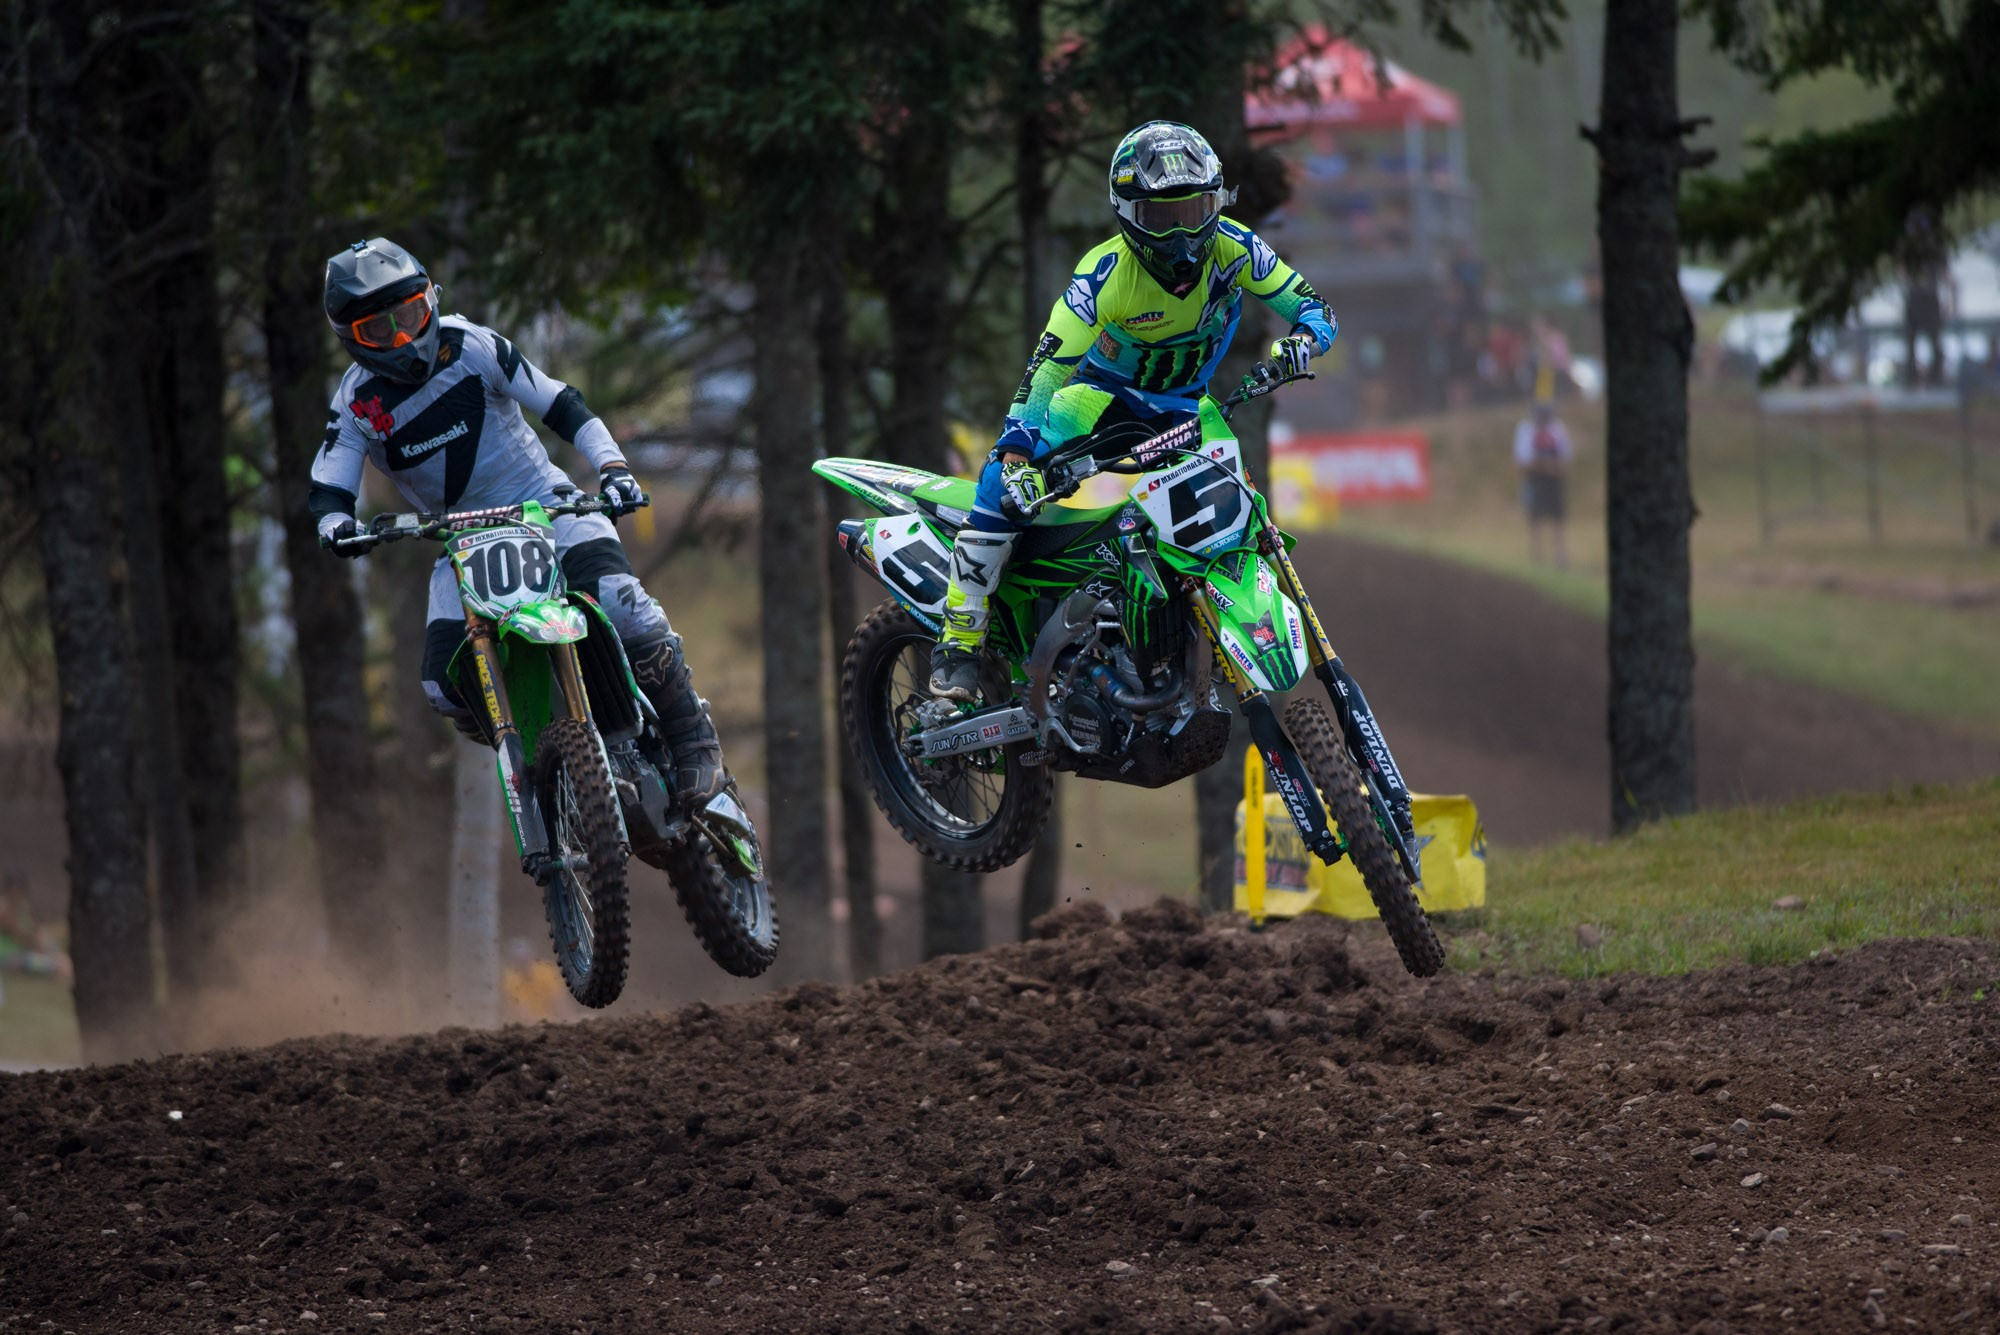 Monster Energy Alpinestars Kawasaki's Mike Alessi grabbed both holeshots and the Royal Distributing Triple Crown.